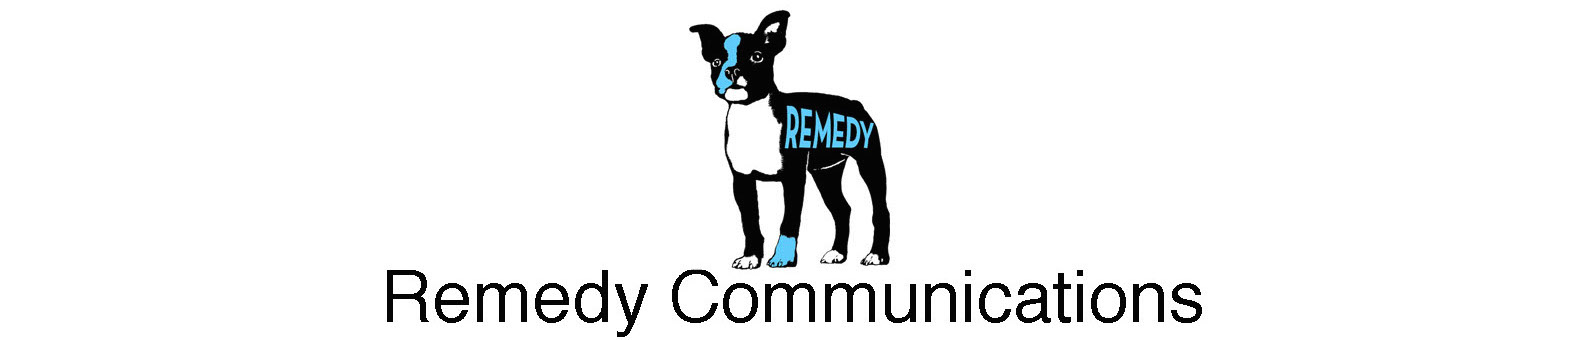 Remedy Communications - San Diego's Leading PR And Social Media Consultancy